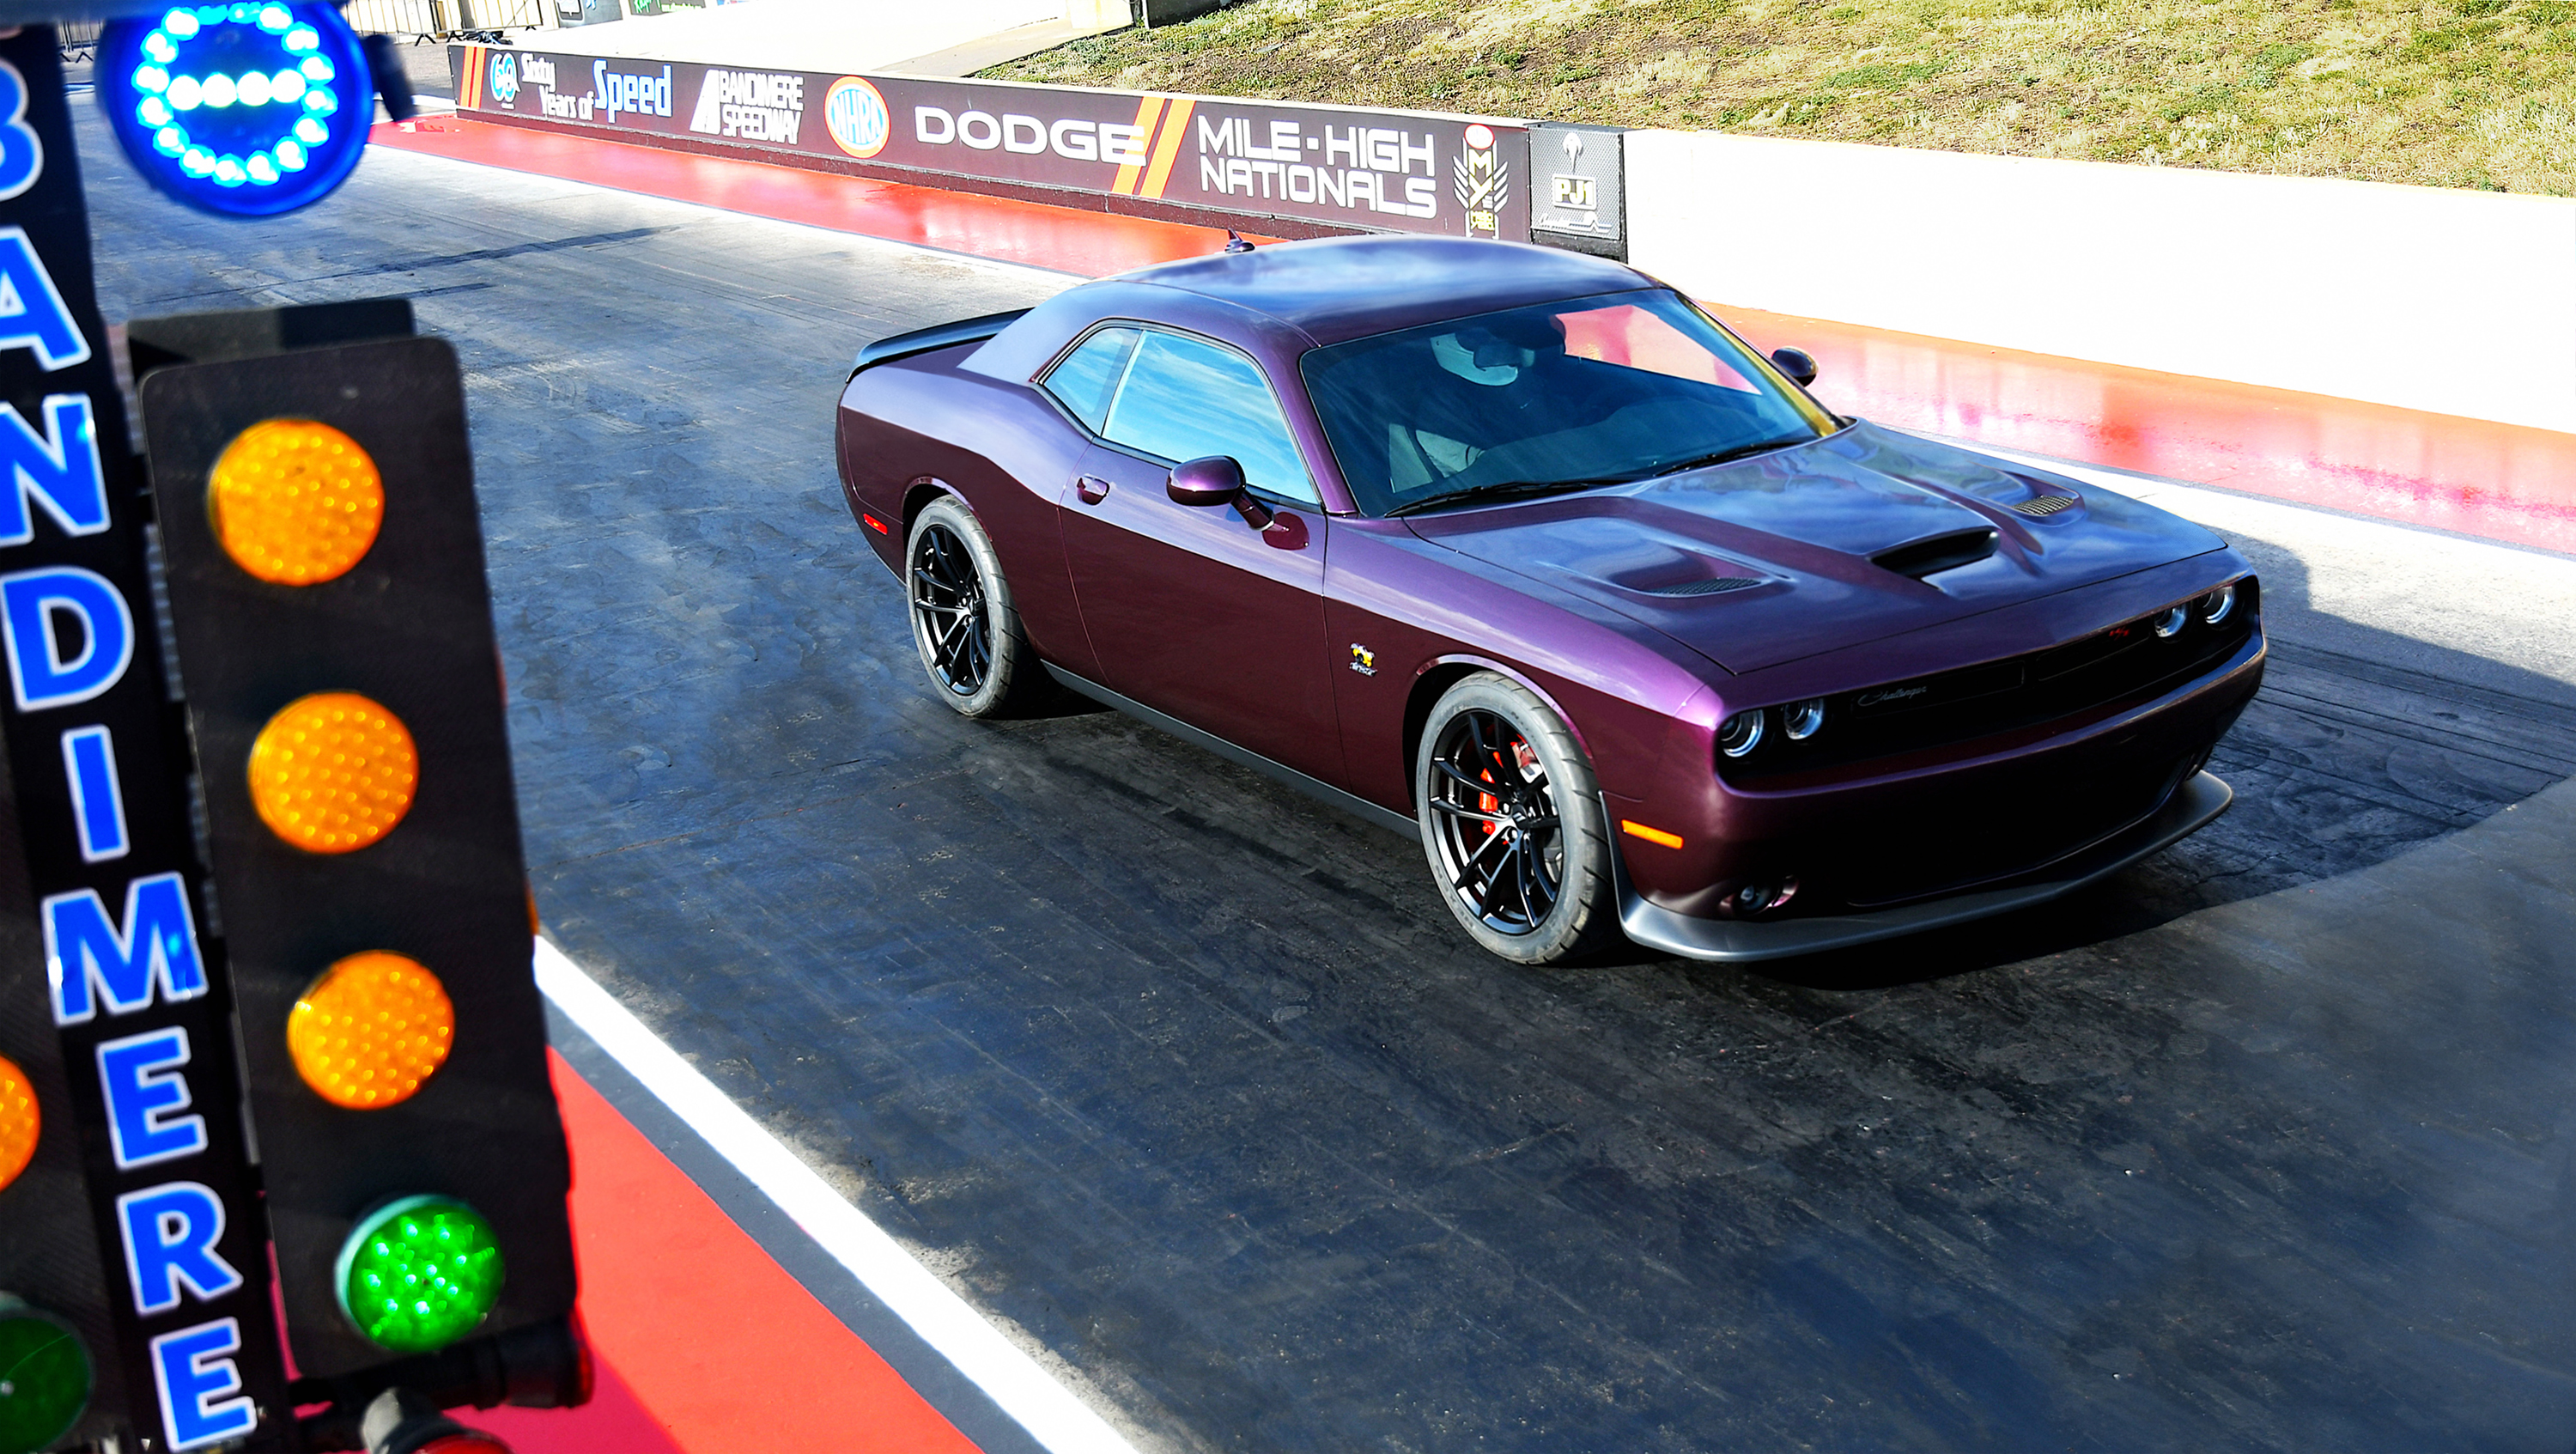 "The 2019 Dodge Challenger R/T Scat Pack 1320 is a drag-oriented, street-legal muscle car designed with the grassroots drag racer in mind. Named for the quarter-mile distance (1,320 feet), the Challenger R/T Scat Pack 1320 is powered by the stalwart 392 HEMI® V-8 that delivers 485 horsepower and 475 lb.-ft. of torque. Running the quarter-mile in 11.7 seconds at 115 mph makes the showroom-stock Challenger R/T Scat Pack 1320 the fastest naturally aspirated, street-legal muscle car available. Note the vehicle is shown in custom ""Black Eye"" high-impact exterior paint being used to gauge interest as potential future production exterior color."